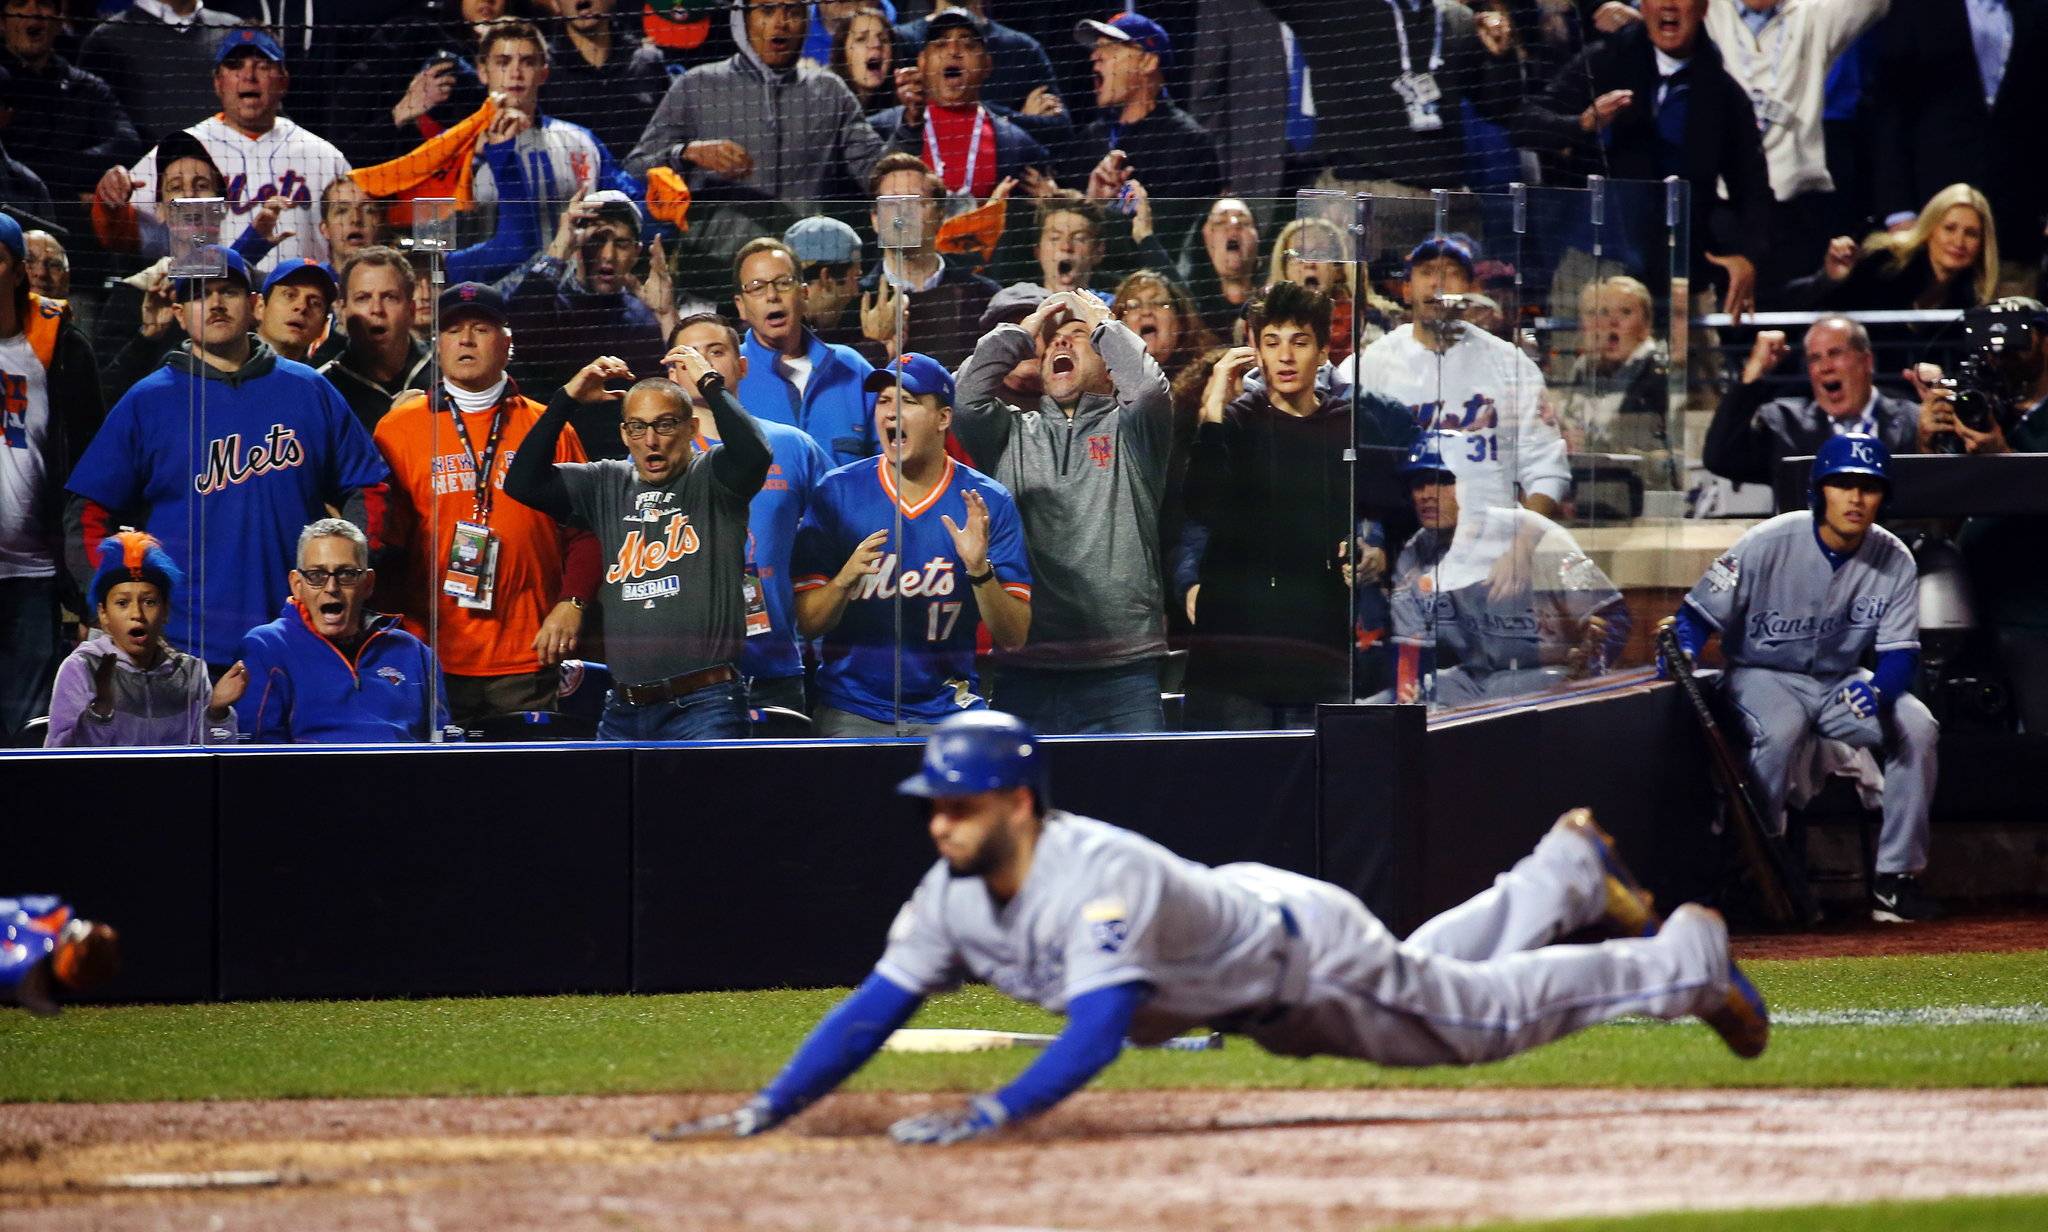 f2bee74f0 metsfans-callout-pic-superJumbo.0.jpg . Concluding the (mostly) complete  multimedia story of your 2015 World Champion Kansas City Royals ...